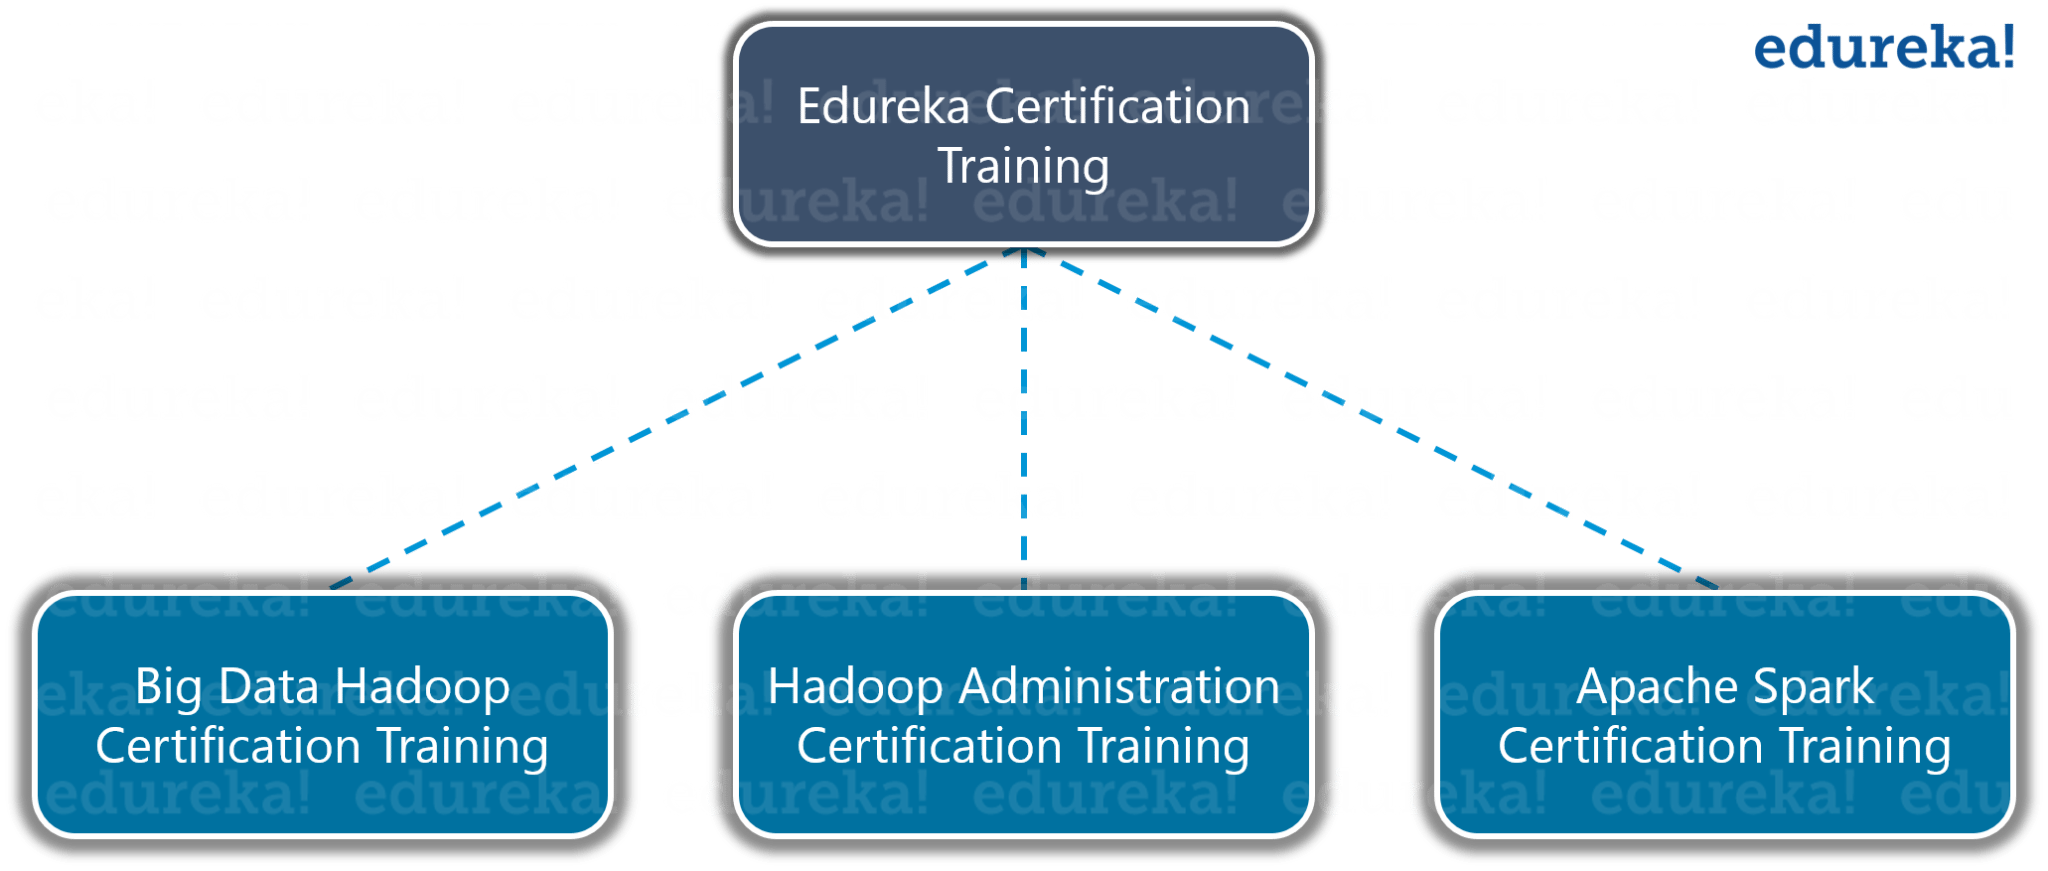 Edureka Certification Training - Hadoop Certification - Edureka